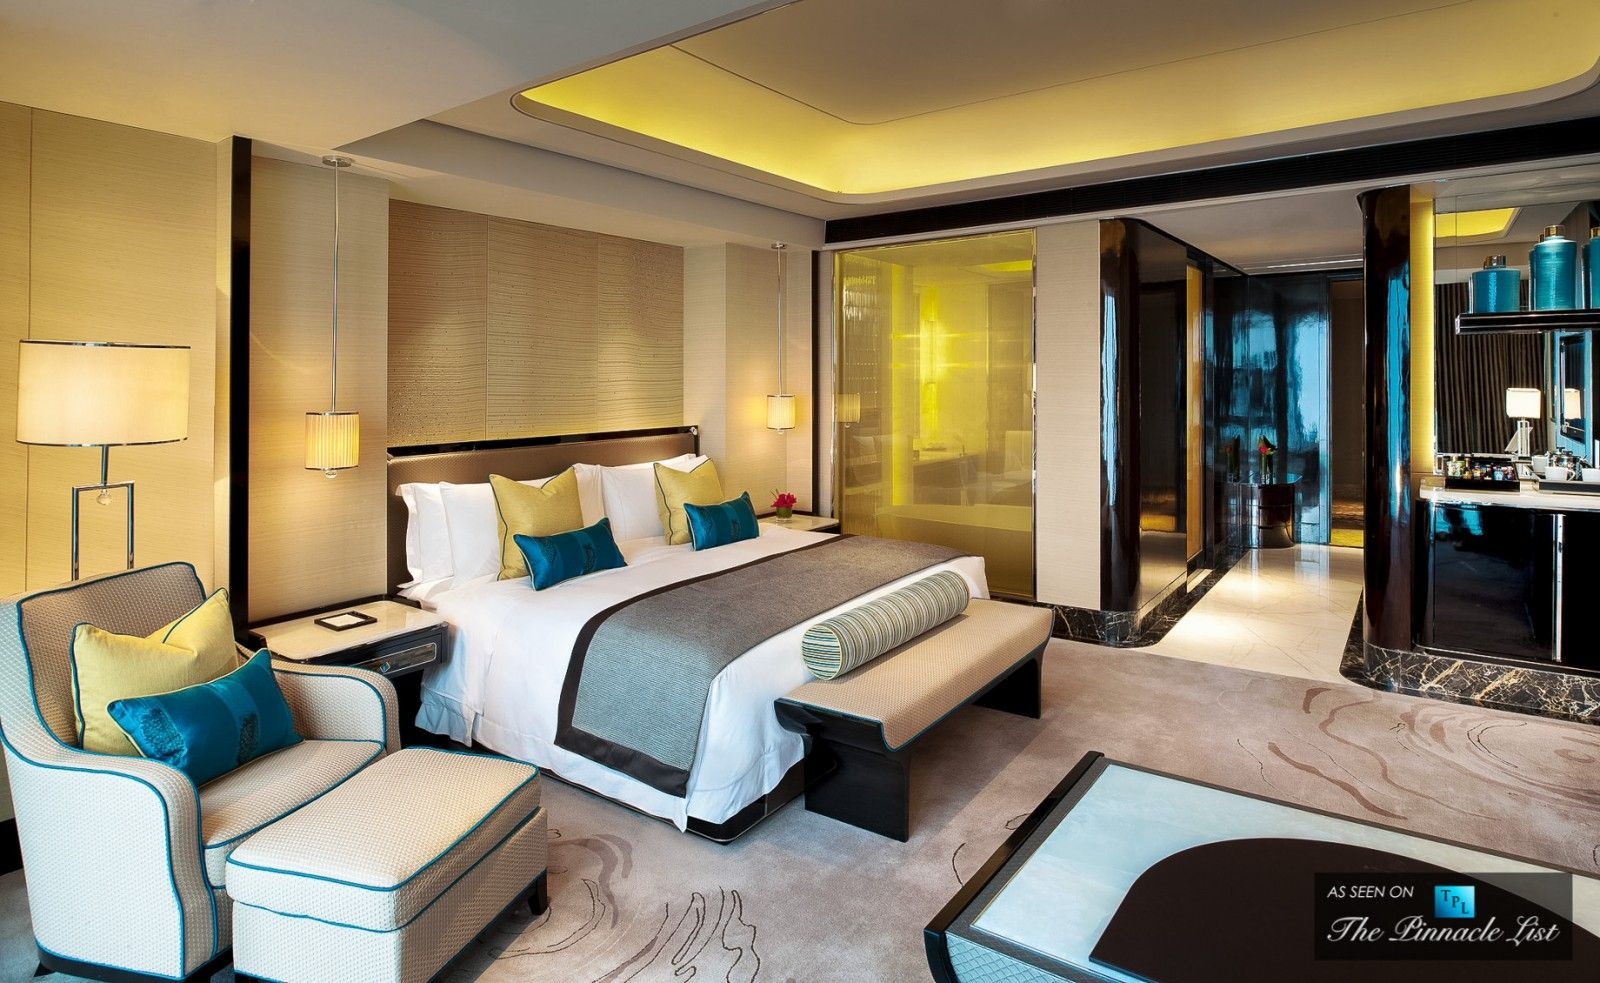 comfort abounds in this hotel suite st regis luxury